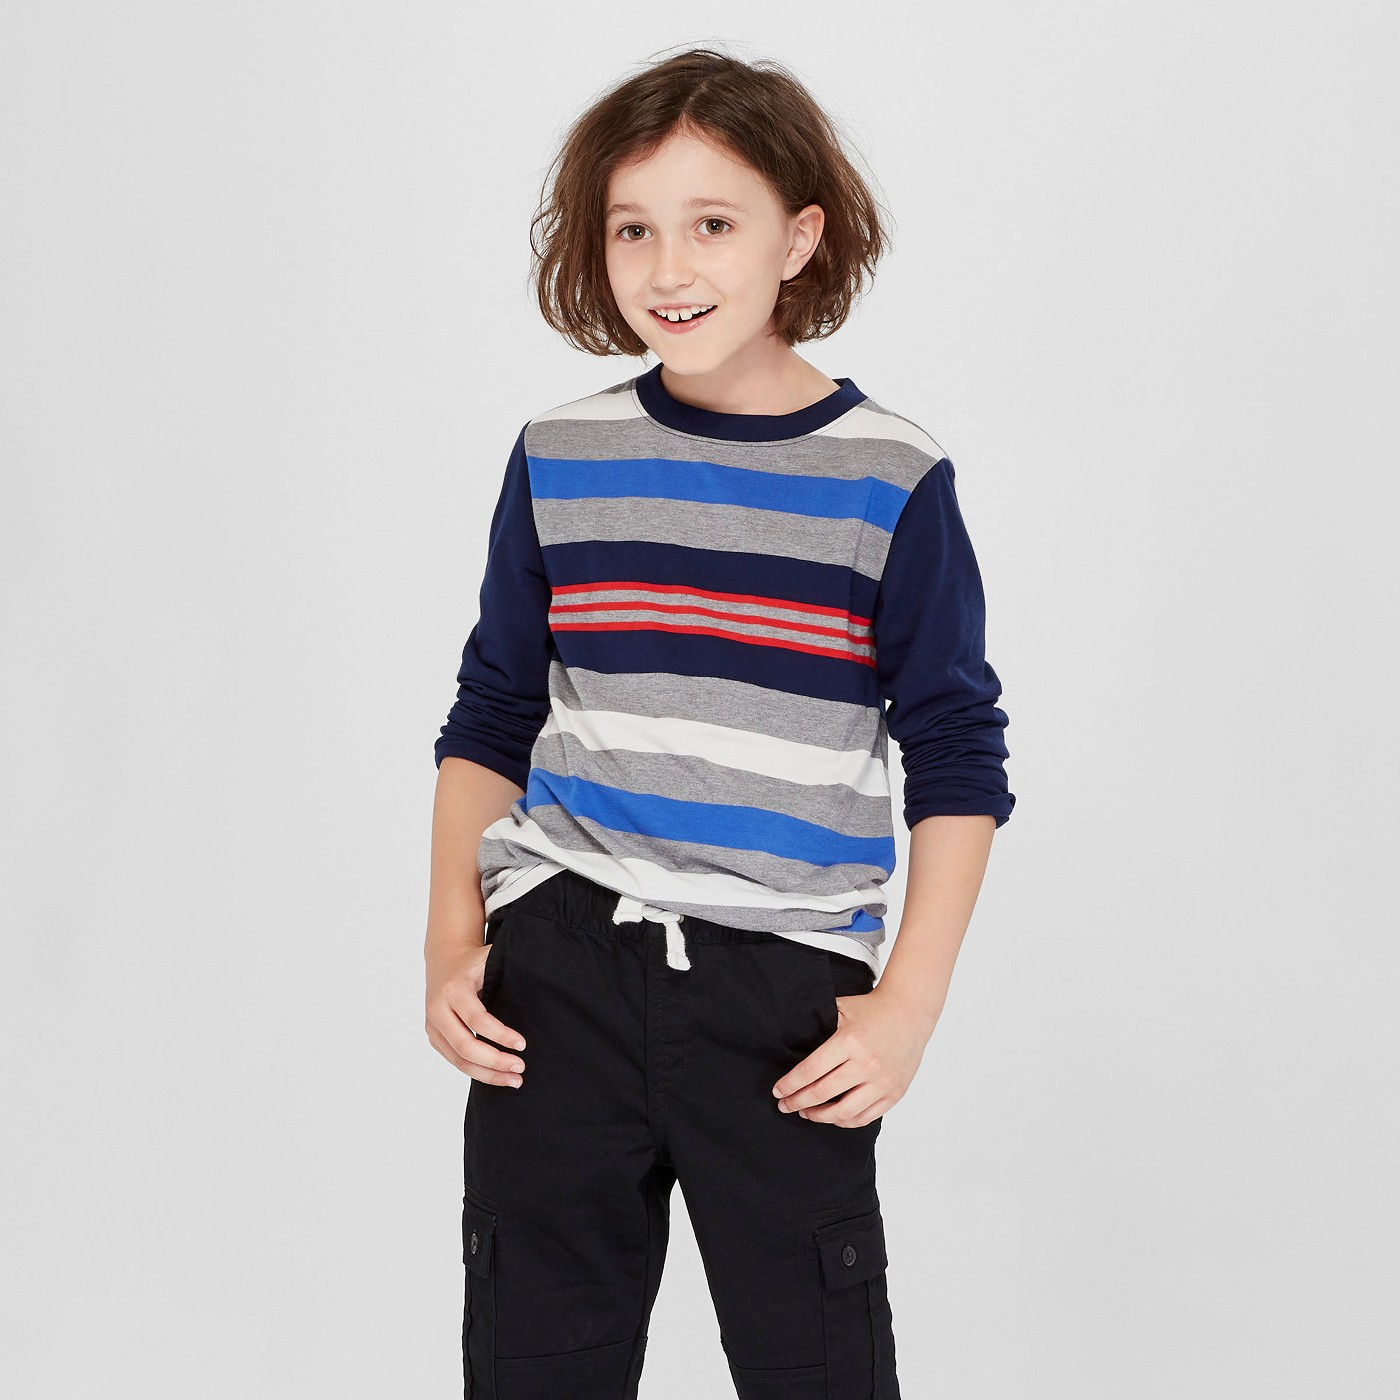 Boys' Striped Long-Sleeved Tee - $6